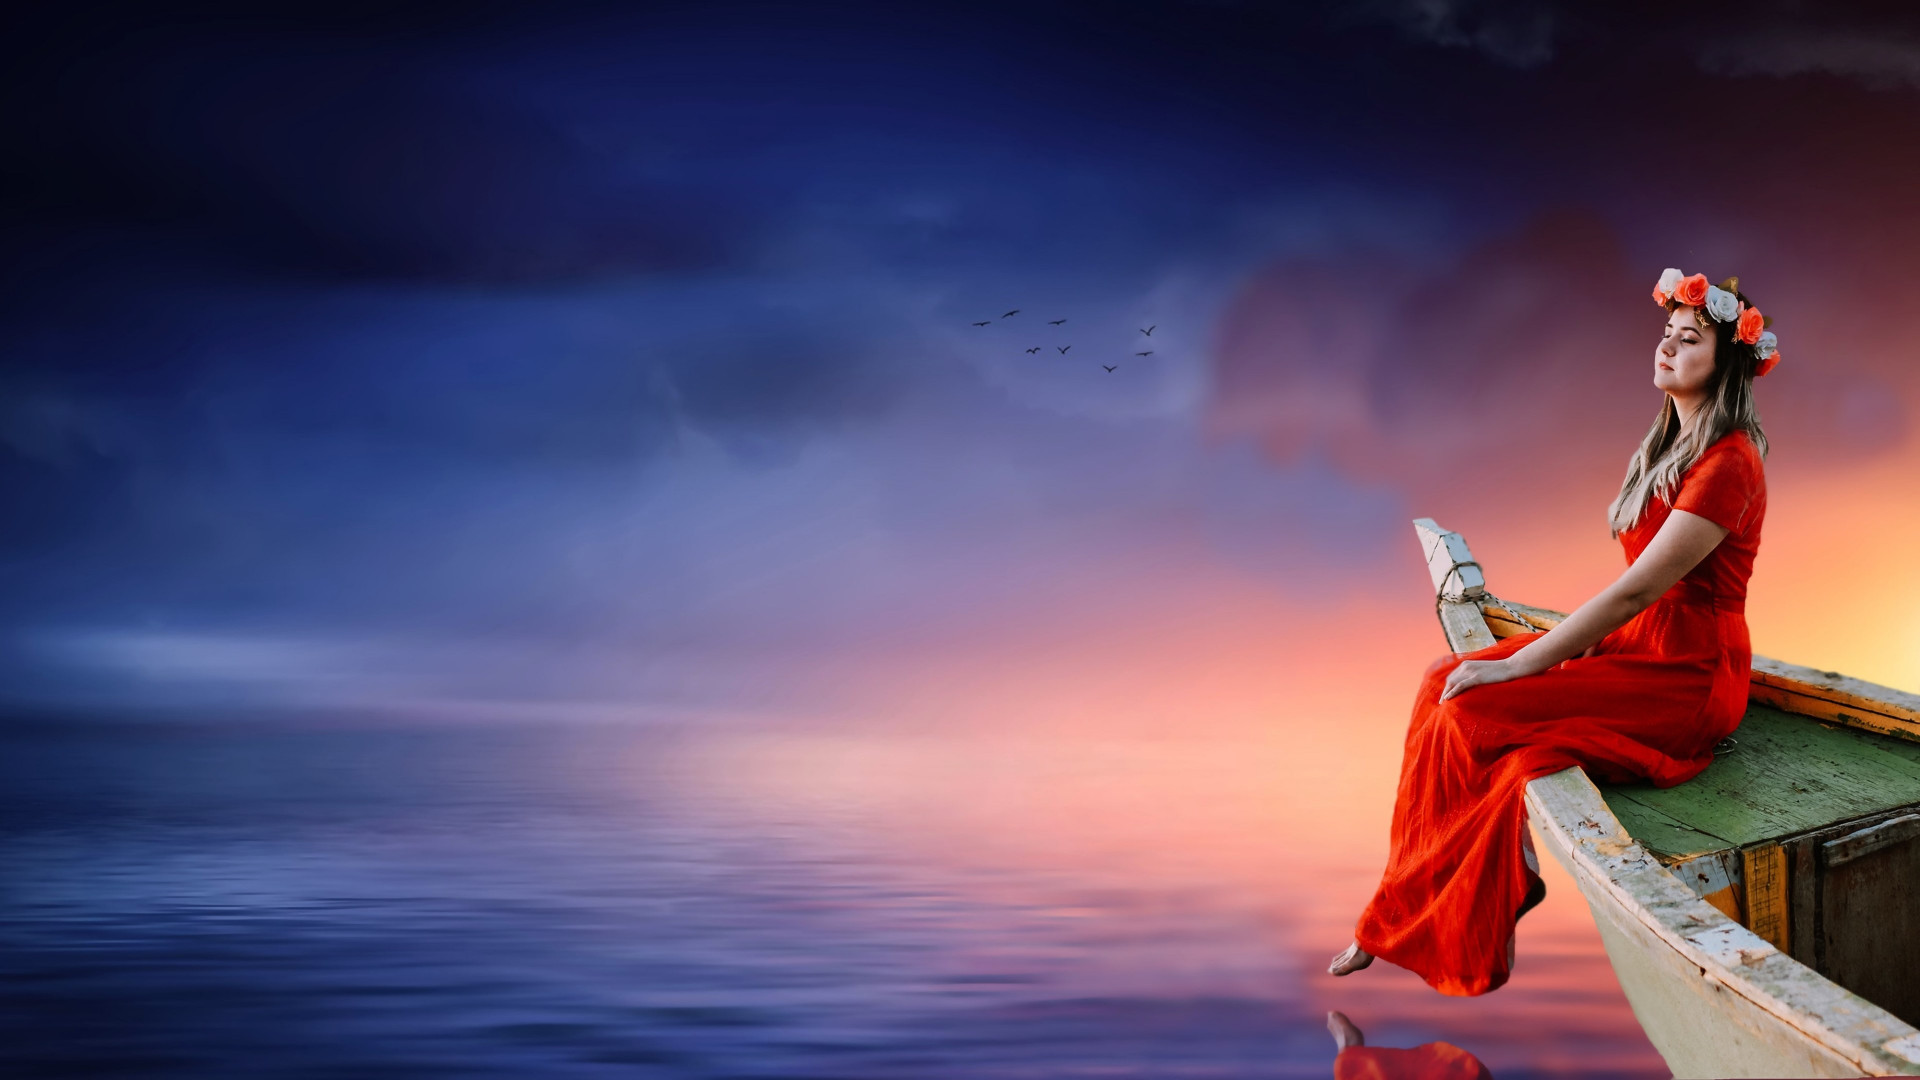 Beautiful girl, sunset, boat, lake, dreaming wallpaper 1920x1080